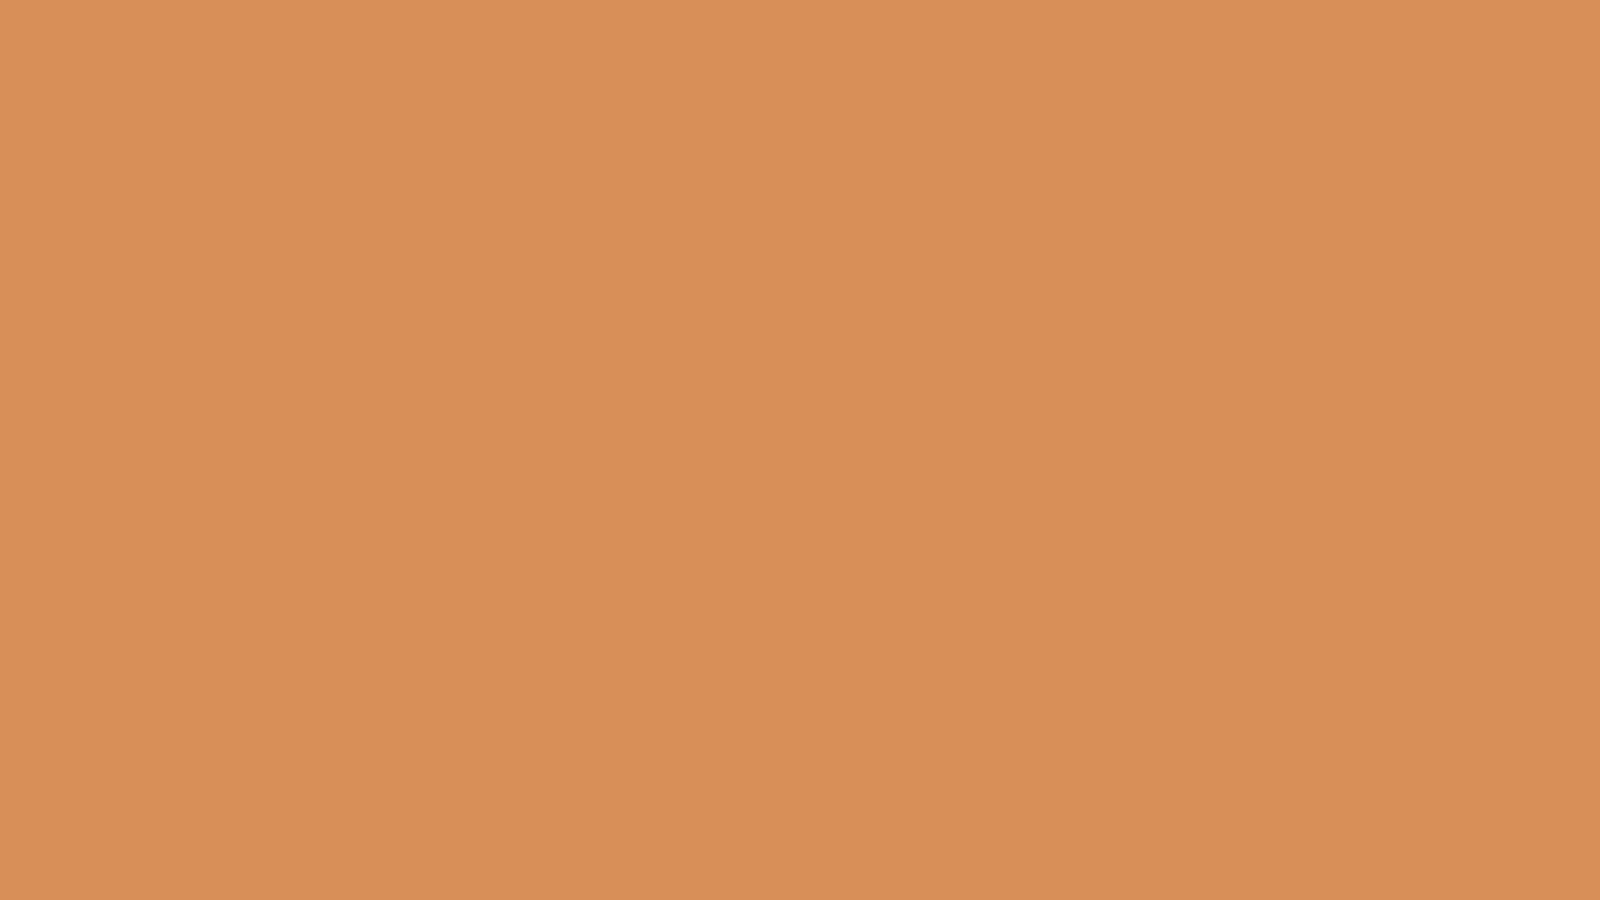 1600x900 Persian Orange Solid Color Background